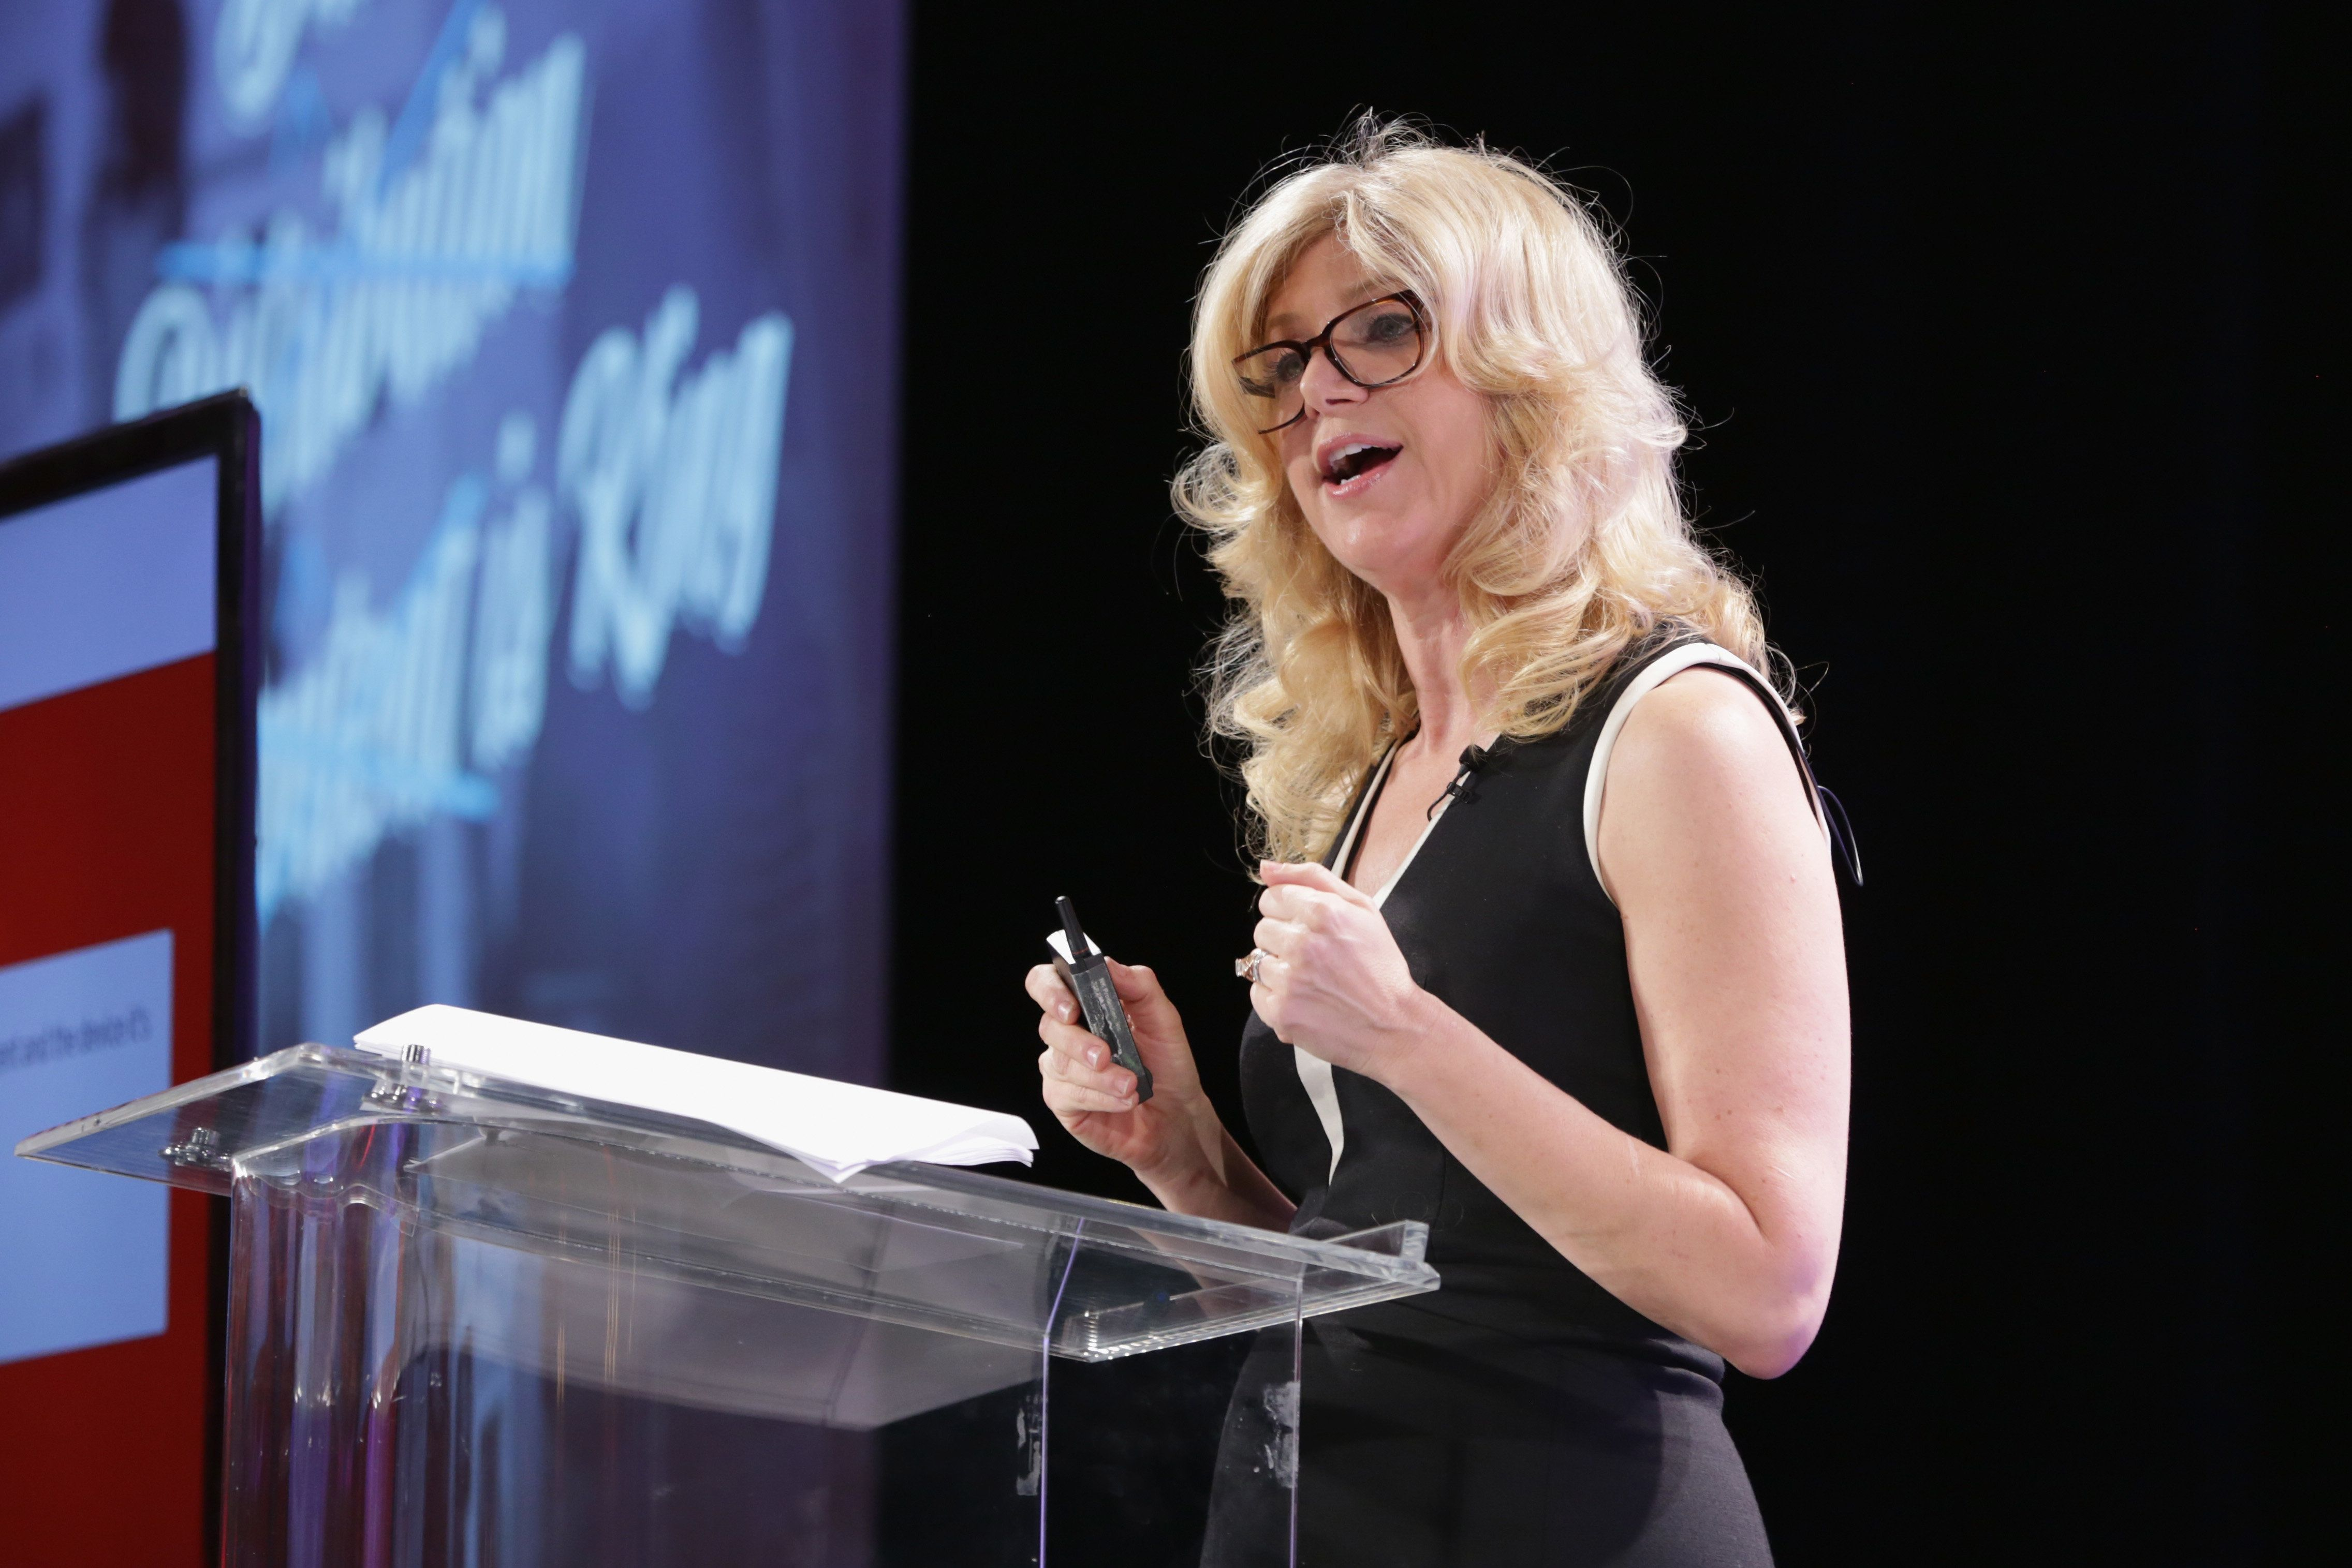 BEVERLY HILLS, CA - OCTOBER 05:  Gail Becker, President of Strategic Partnerships and Global Integration at Edelman speaks onstage during TheWrap's 6th Annual TheGrill at Montage Beverly Hills on October 5, 2015 in Beverly Hills, California.  (Photo by Alison Buck/Getty Images for TheWrap)